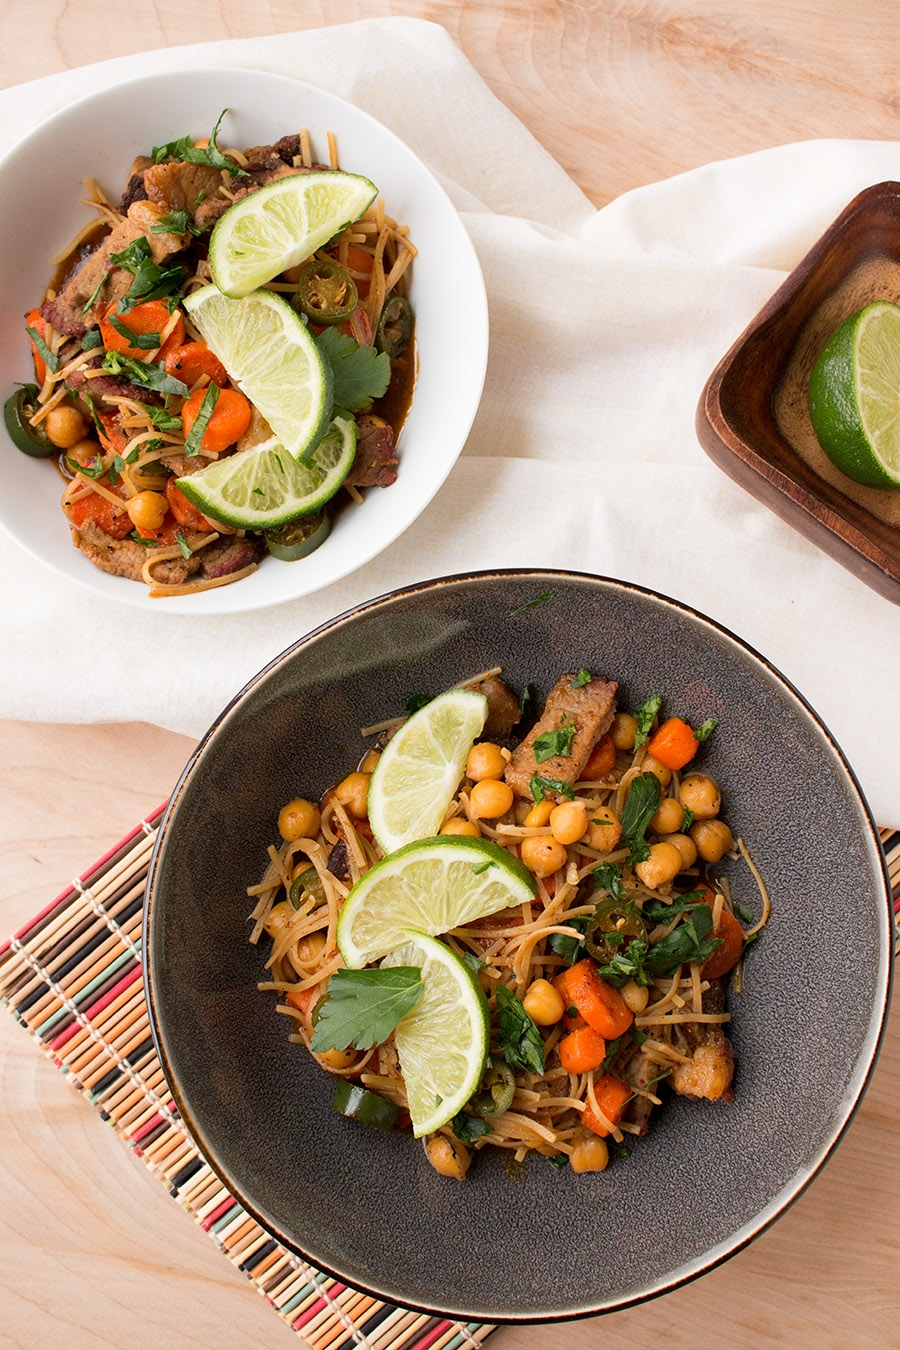 Spicy Beef Stir Fry with Serranos, Carrots and Chickpeas